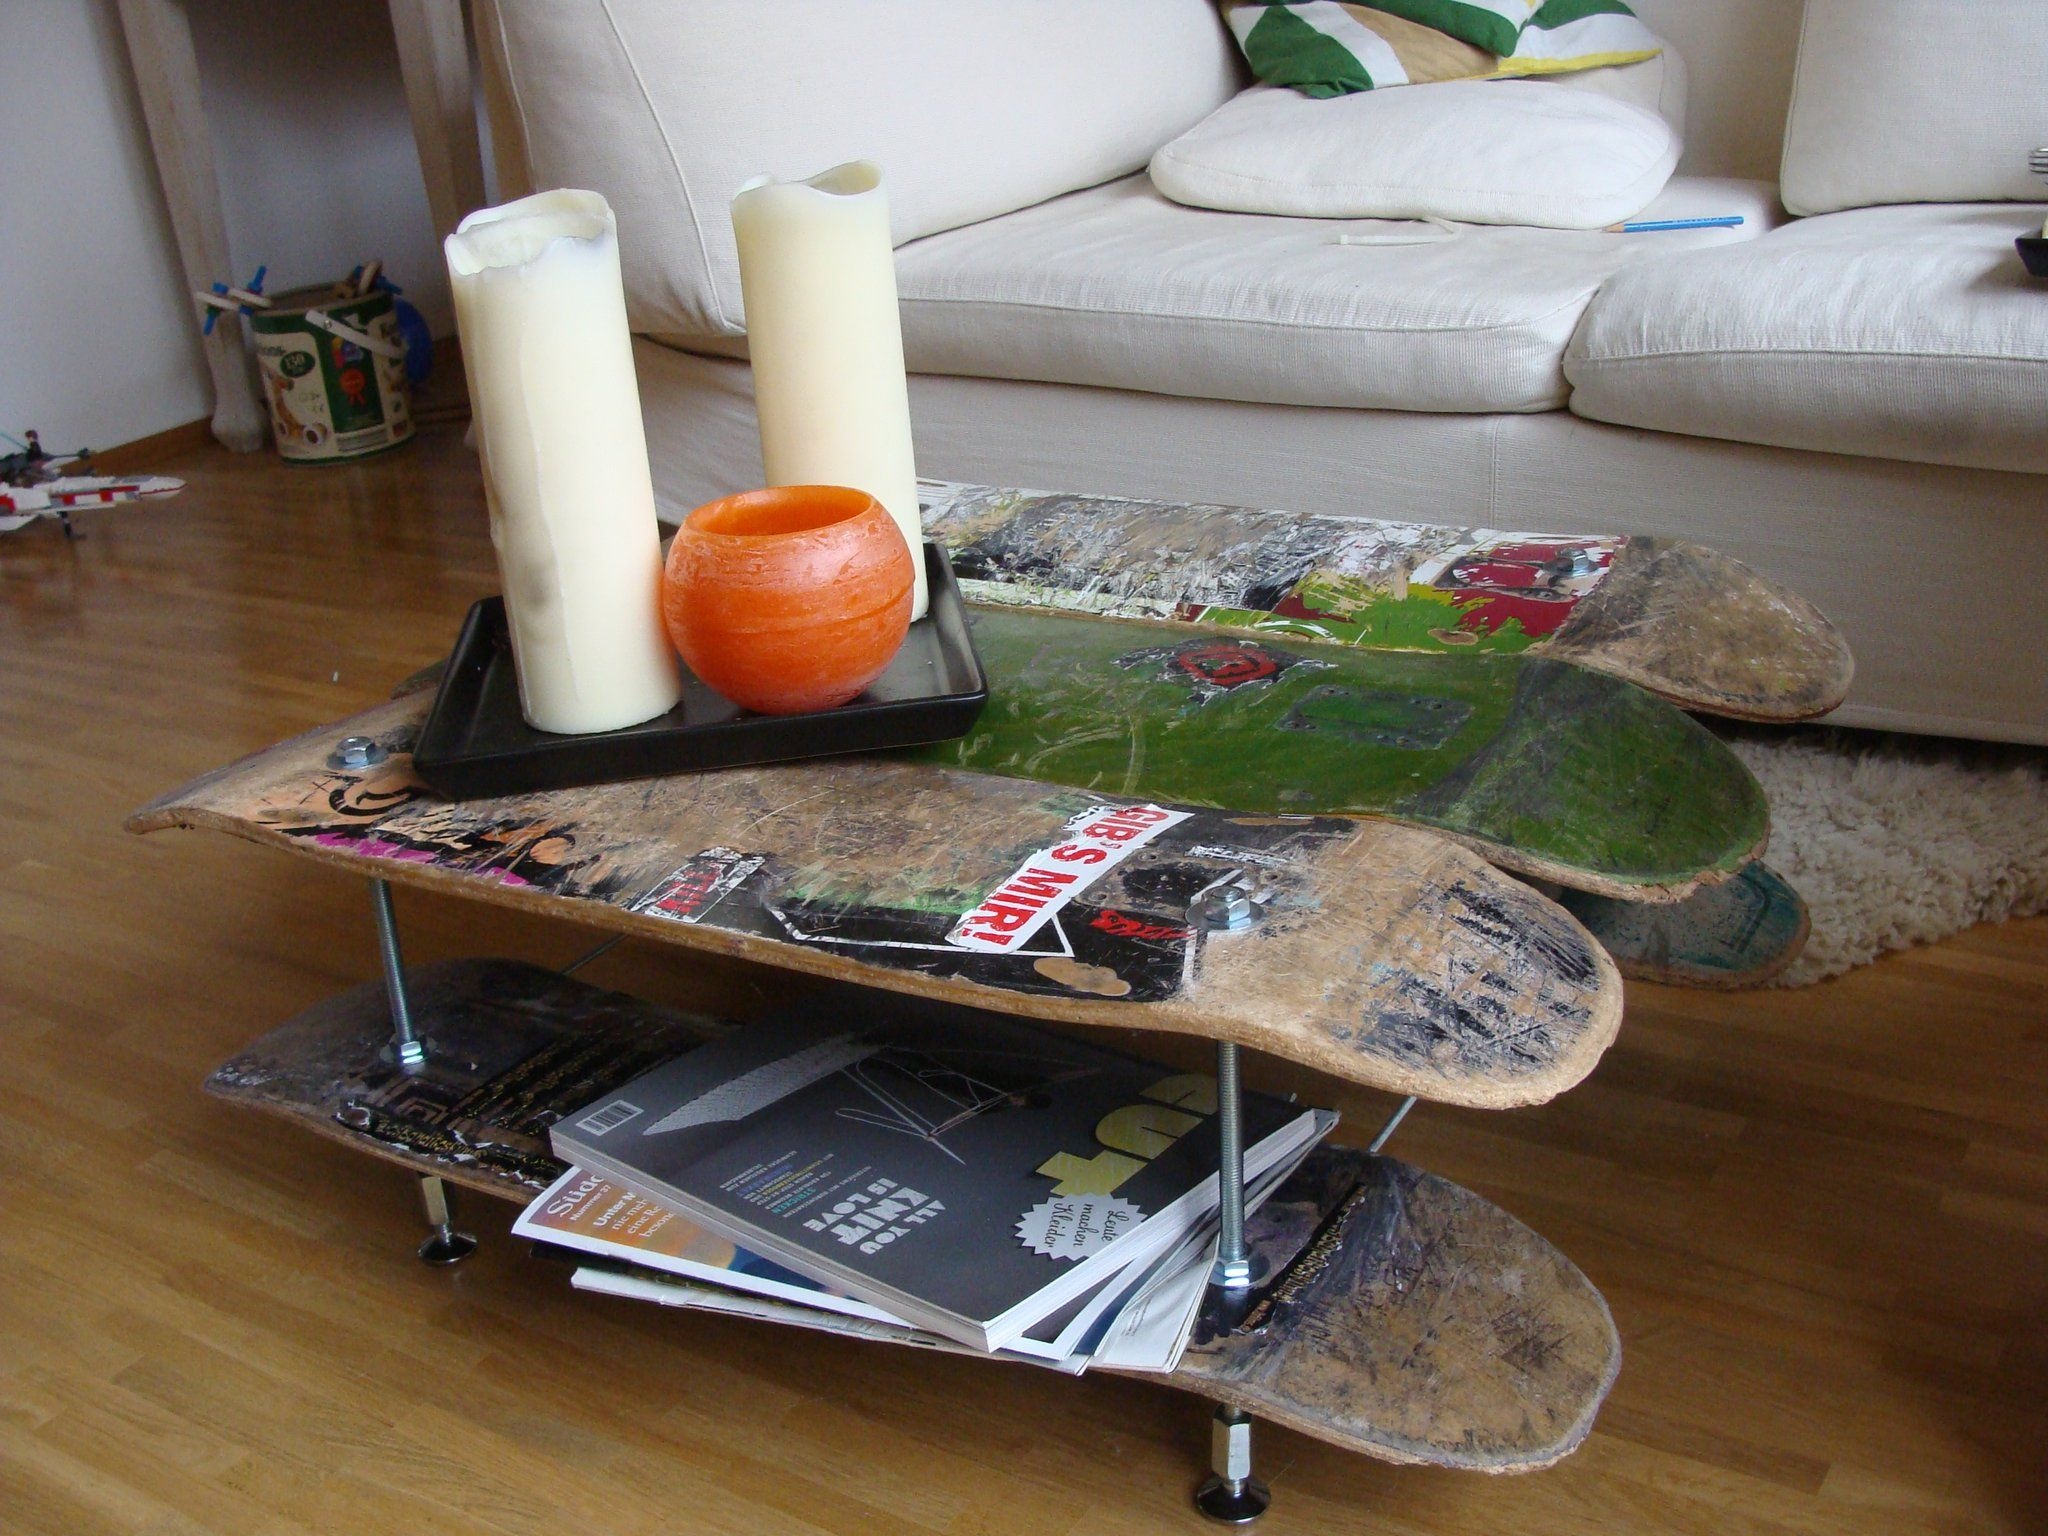 Pin By Lisa Thakkar On Nicer Shice Skateboard Furniture Skateboard Decor Skateboard Room